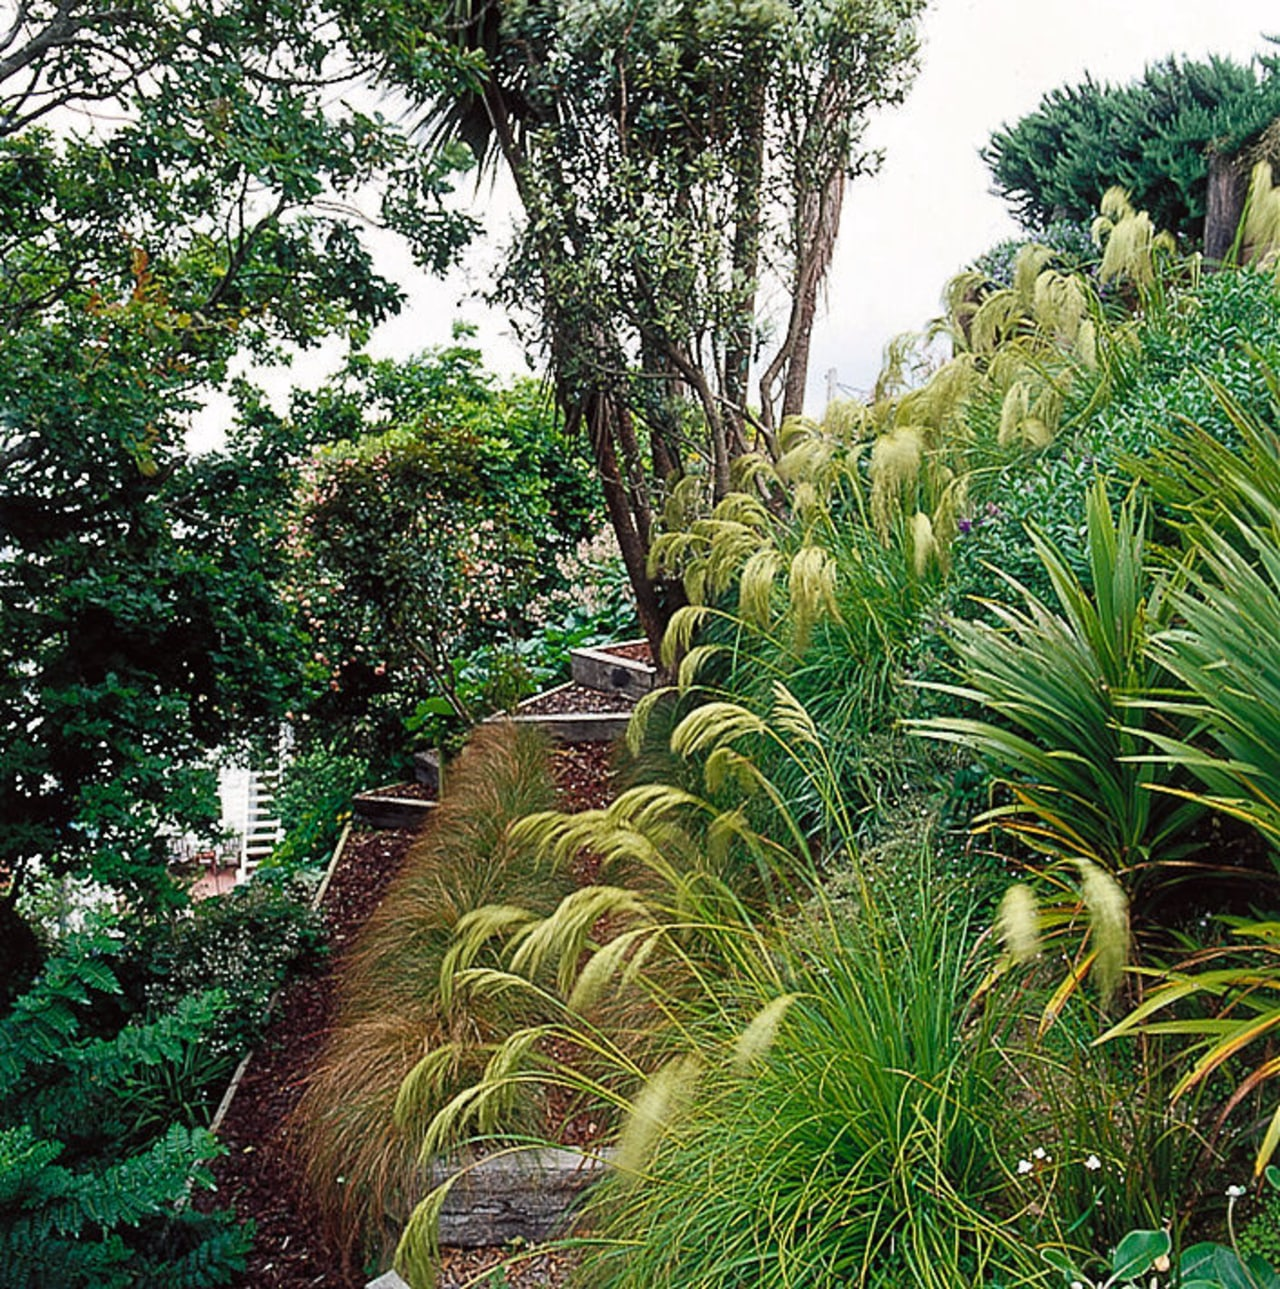 Native plants on slope of hill. arecales, biome, botanical garden, ecosystem, elaeis, flora, forest, garden, grass, grass family, jungle, landscape, nature reserve, old growth forest, palm tree, plant, plant community, rainforest, shrub, shrubland, tree, tropics, vegetation, green